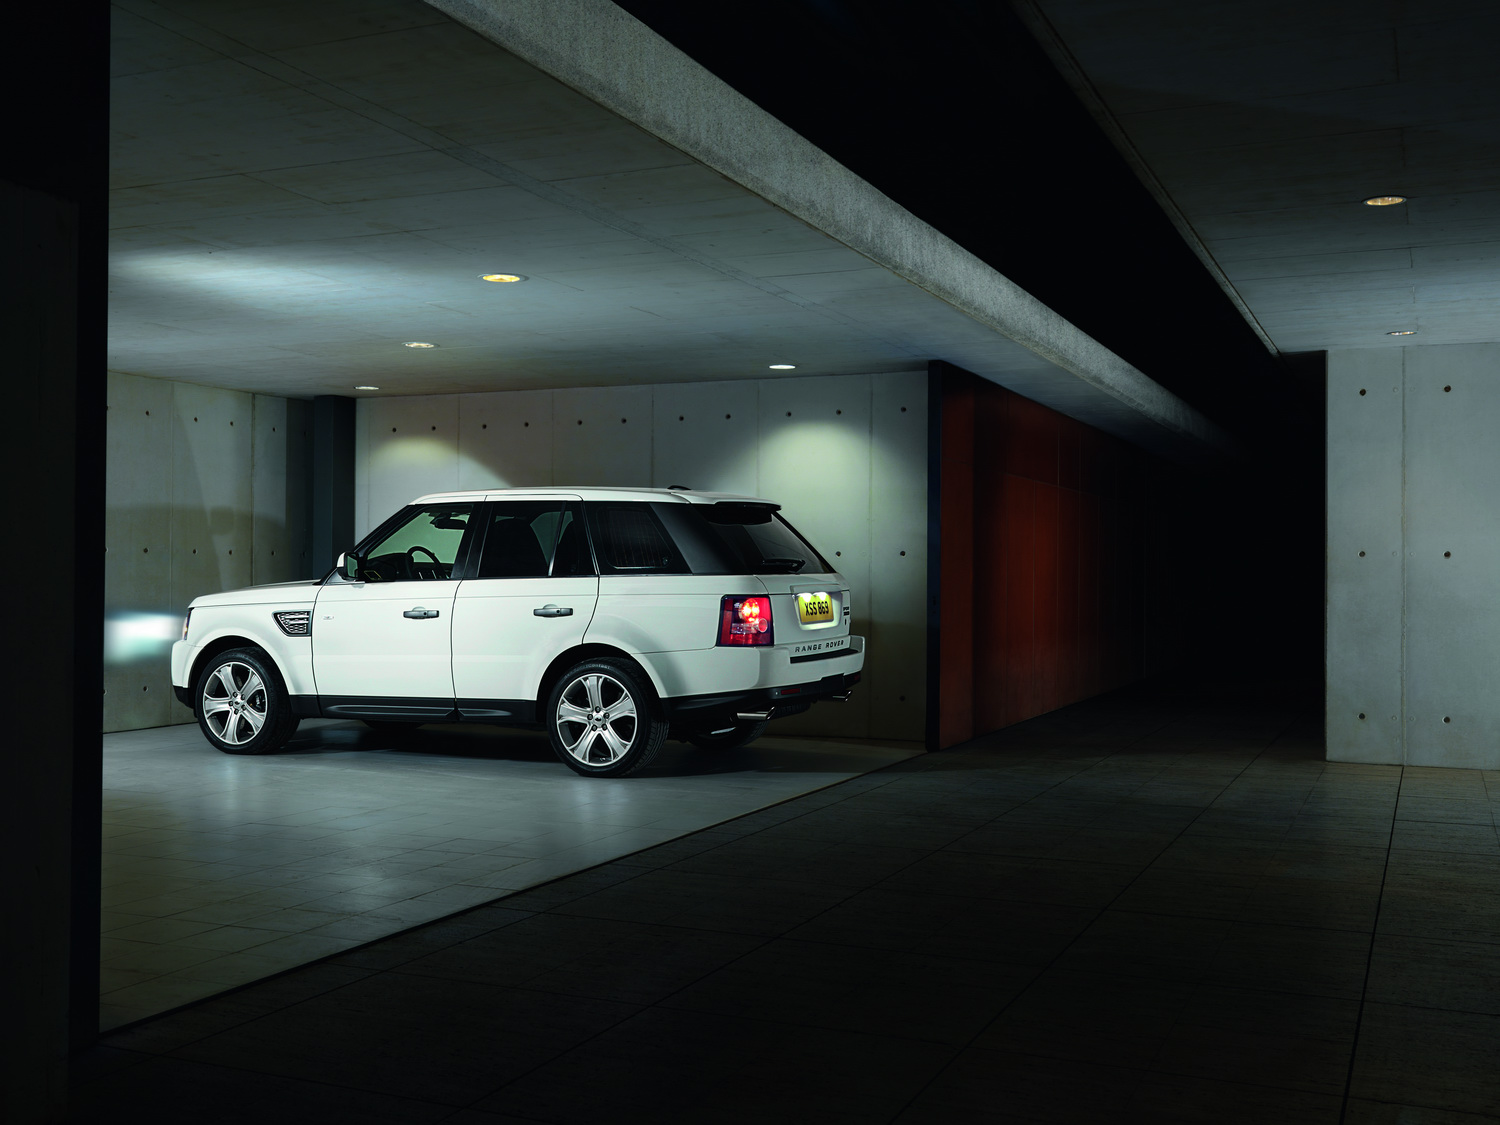 2010 Range Rover Sport 13 Facelifted Range Rover Sport gets new V6 Diesel and V8 Petrol units